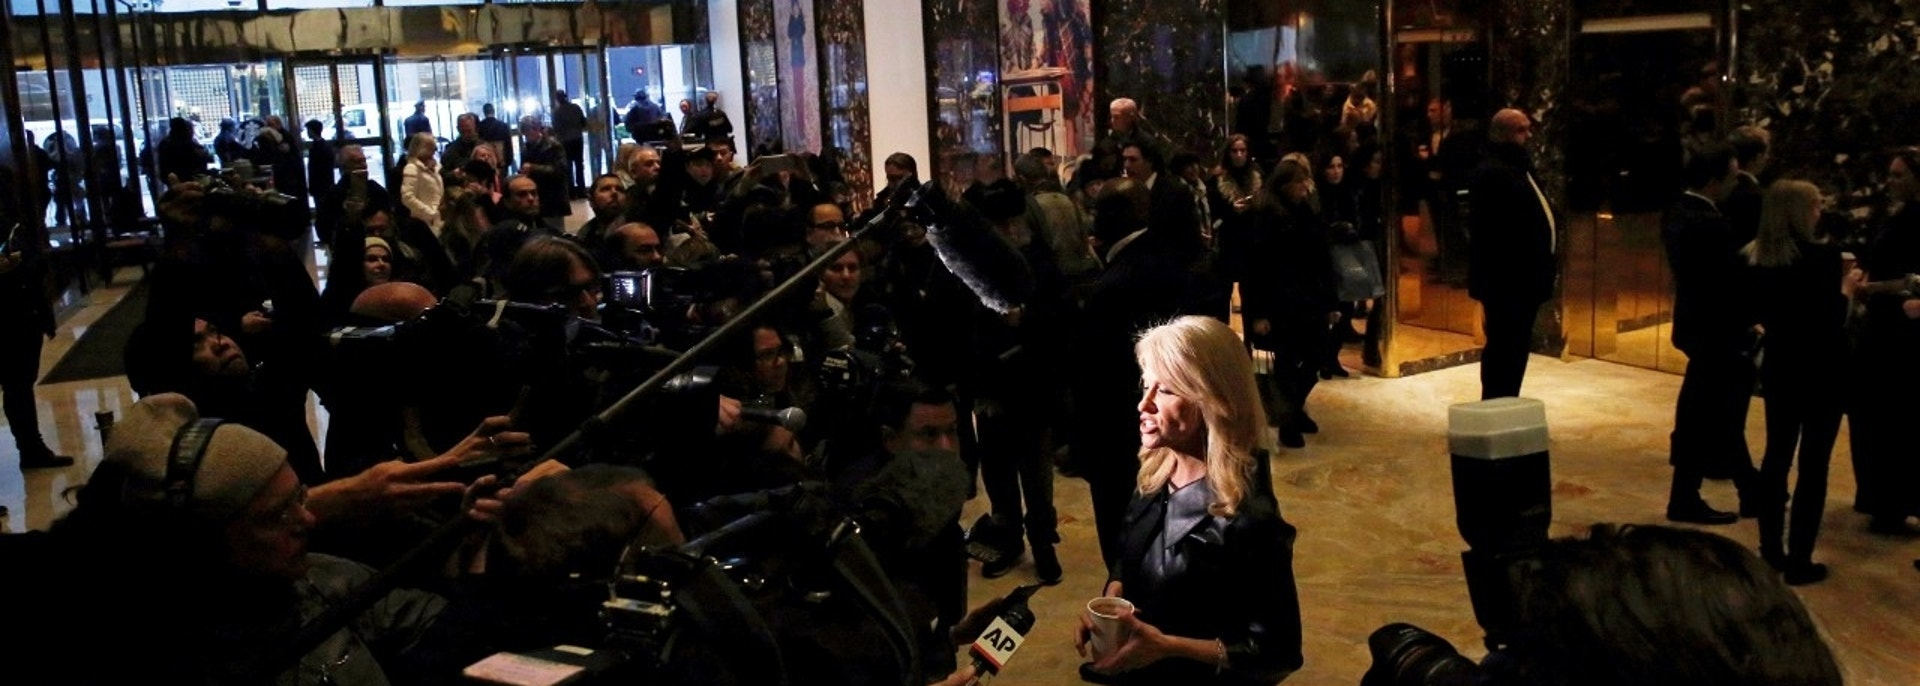 Kellyanne Conway, campaign manager and senior advisor to the Trump Presidential Transition Team, speaks to reporters at Trump Tower in New York, NY, U.S. November 21, 2016. REUTERS/Lucas Jackson - RC17FF5F3F40